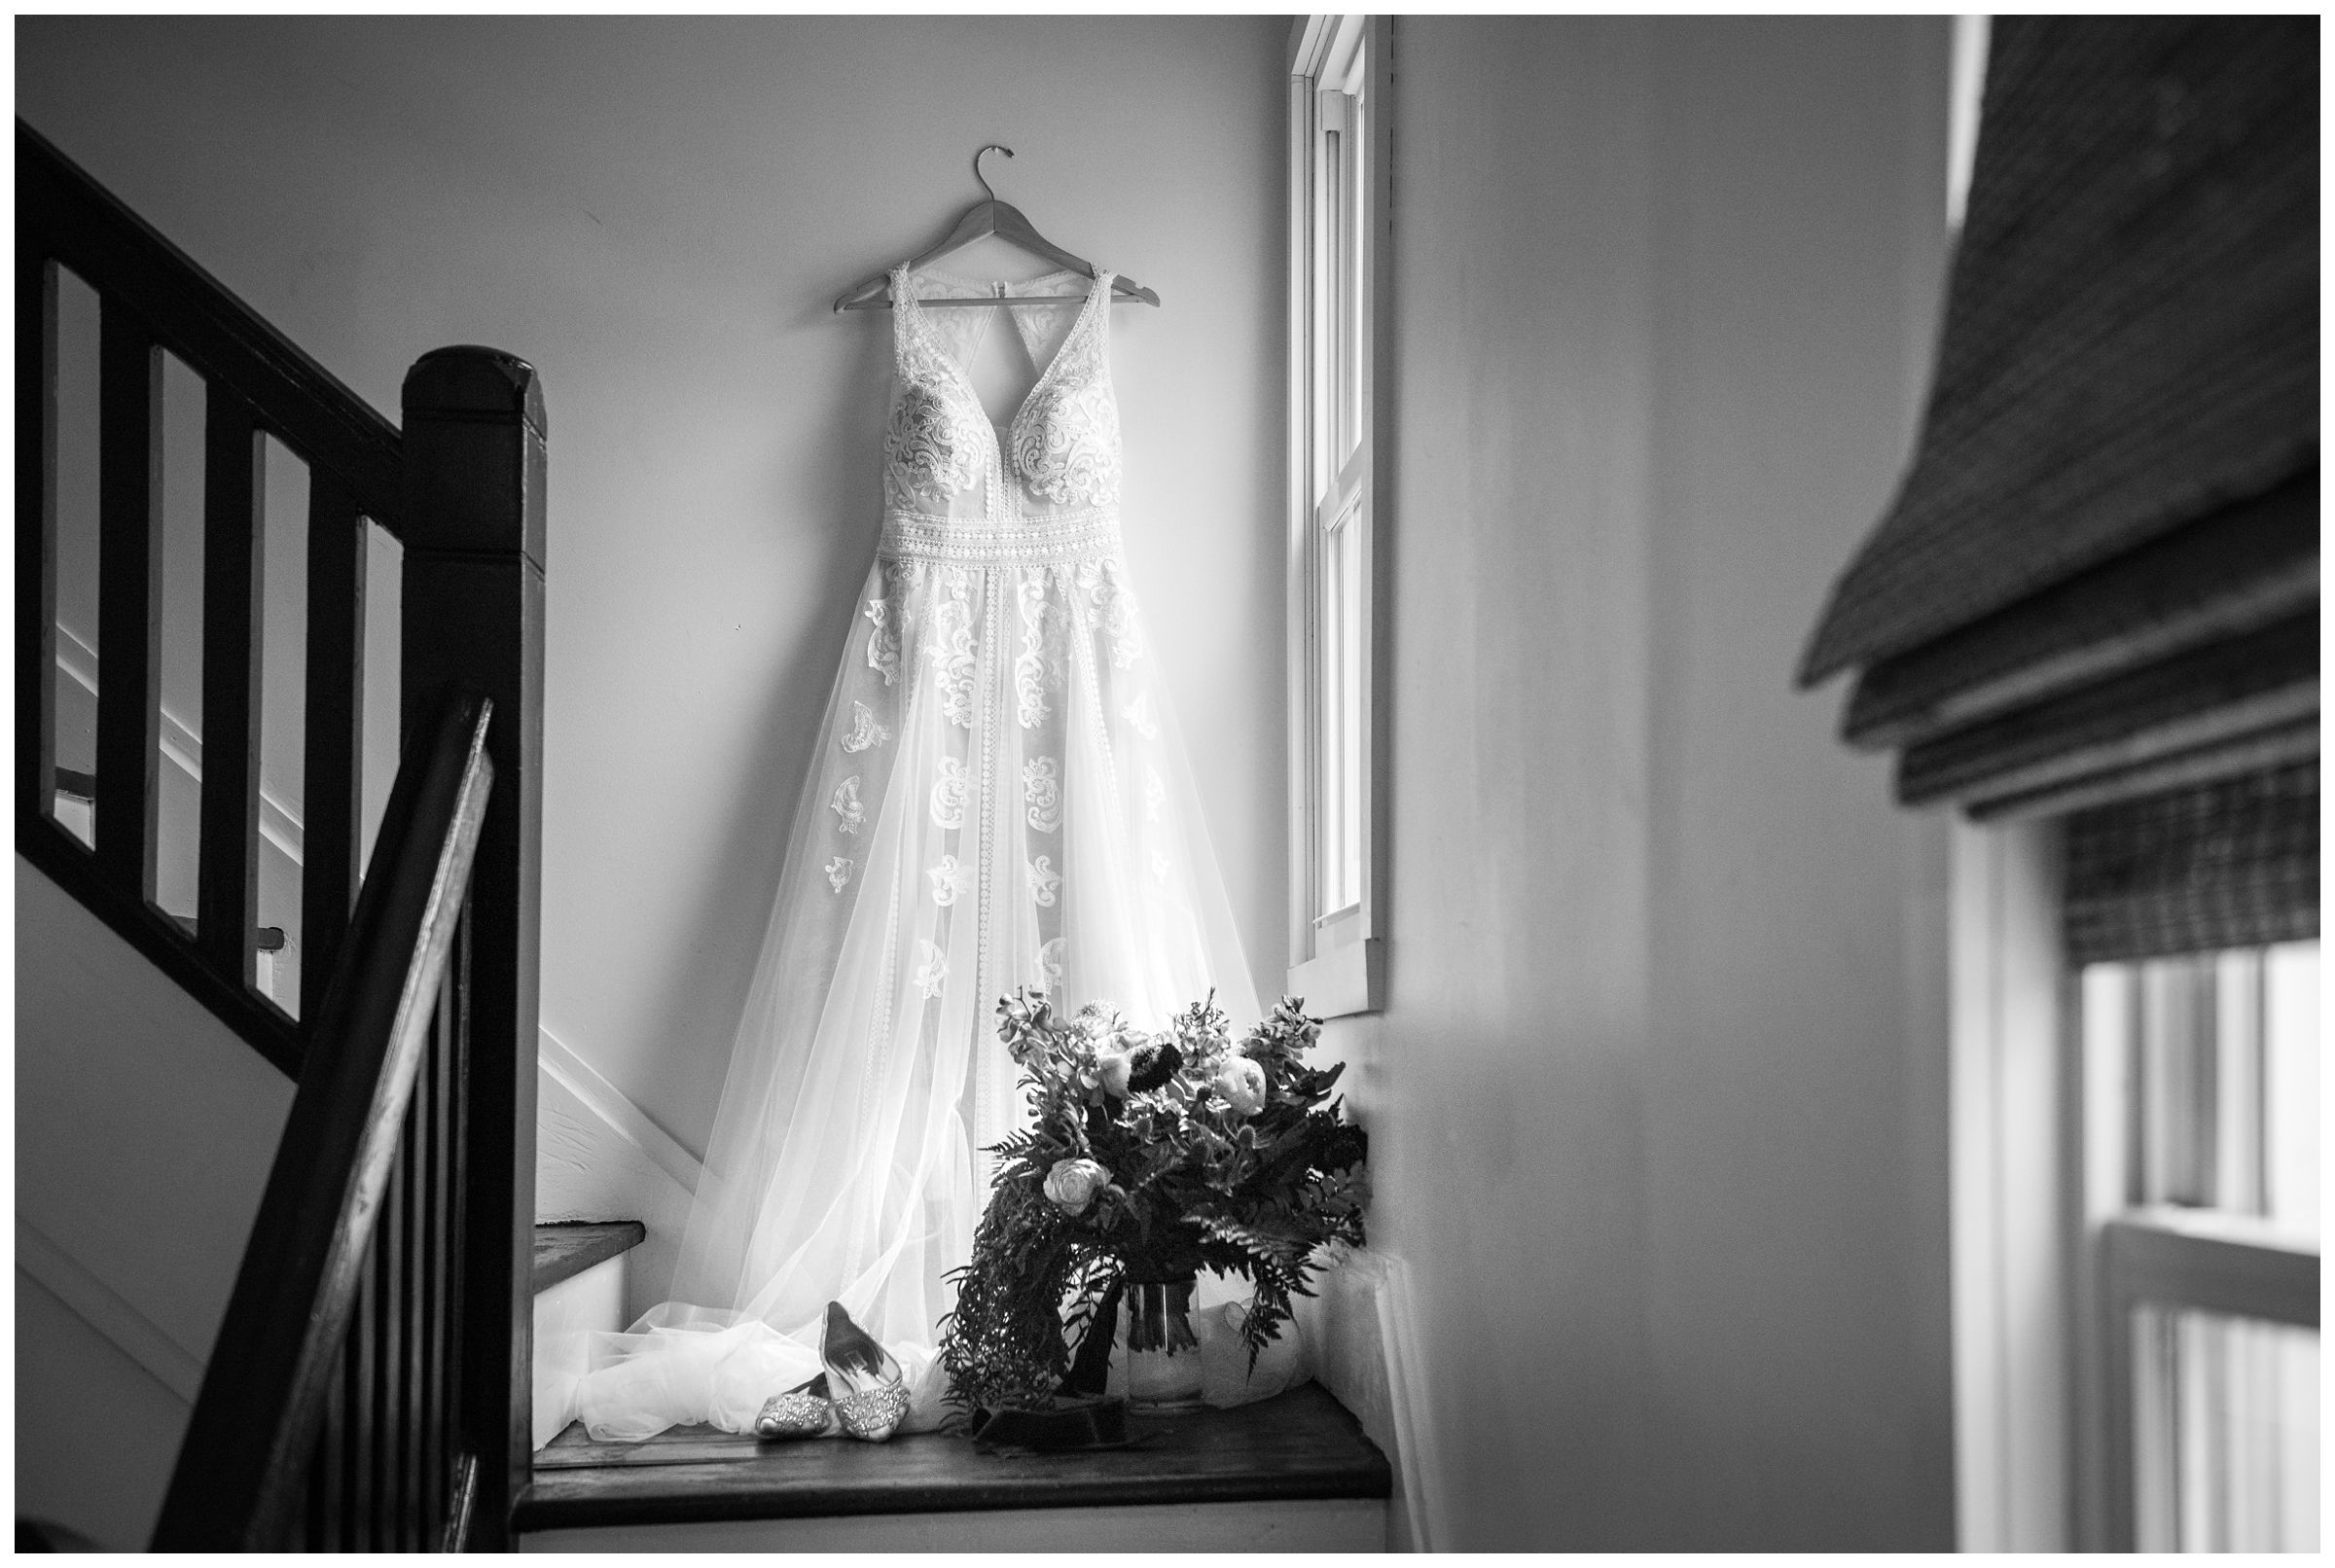 lace a-line wedding dress hanging on stairway by window with bouquet and shoes